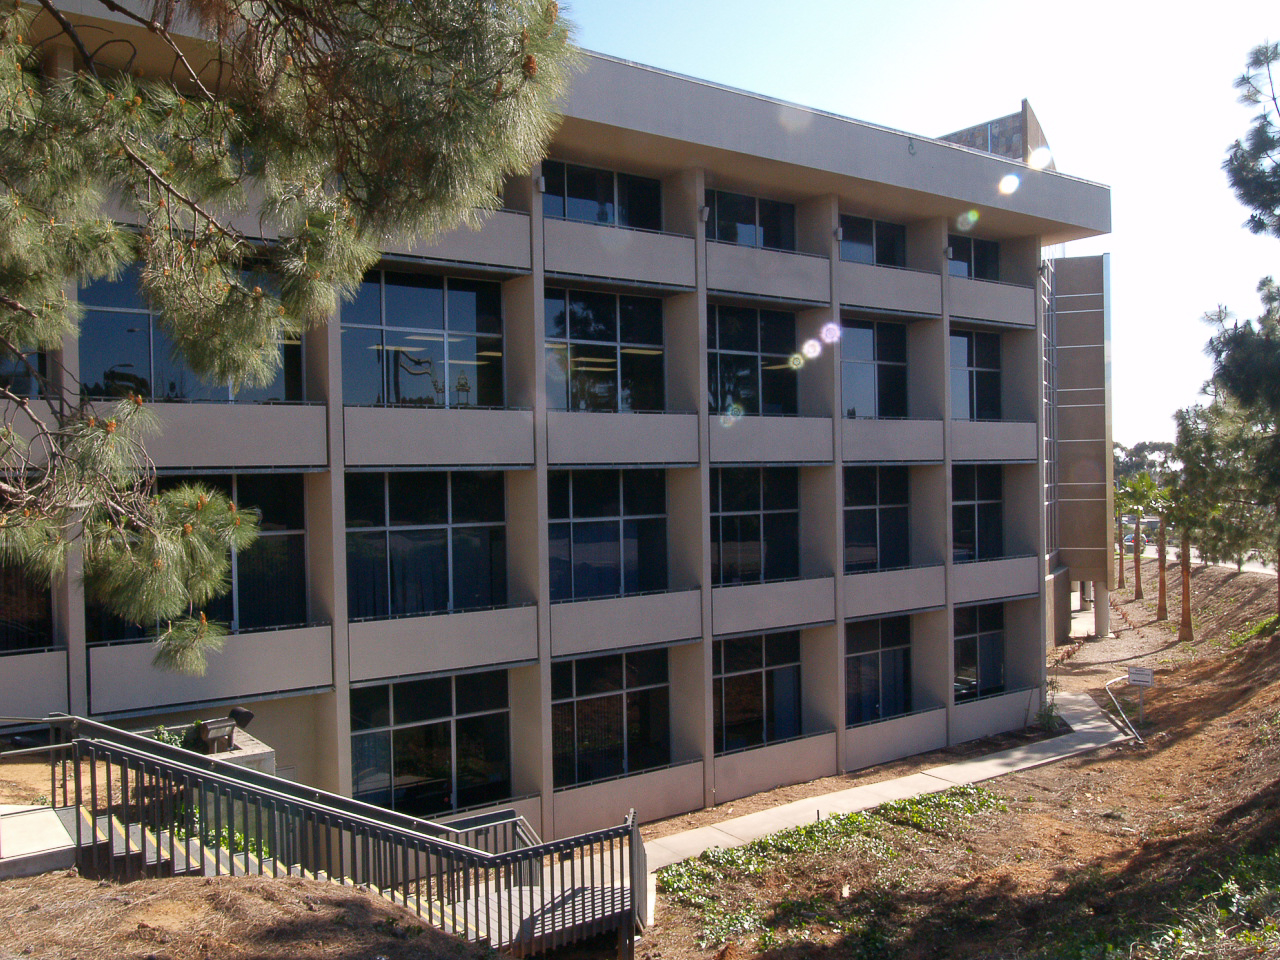 Frost Street Commercial Office Space Tenant Improvement By K.D. Stahl Construction Group Inc.